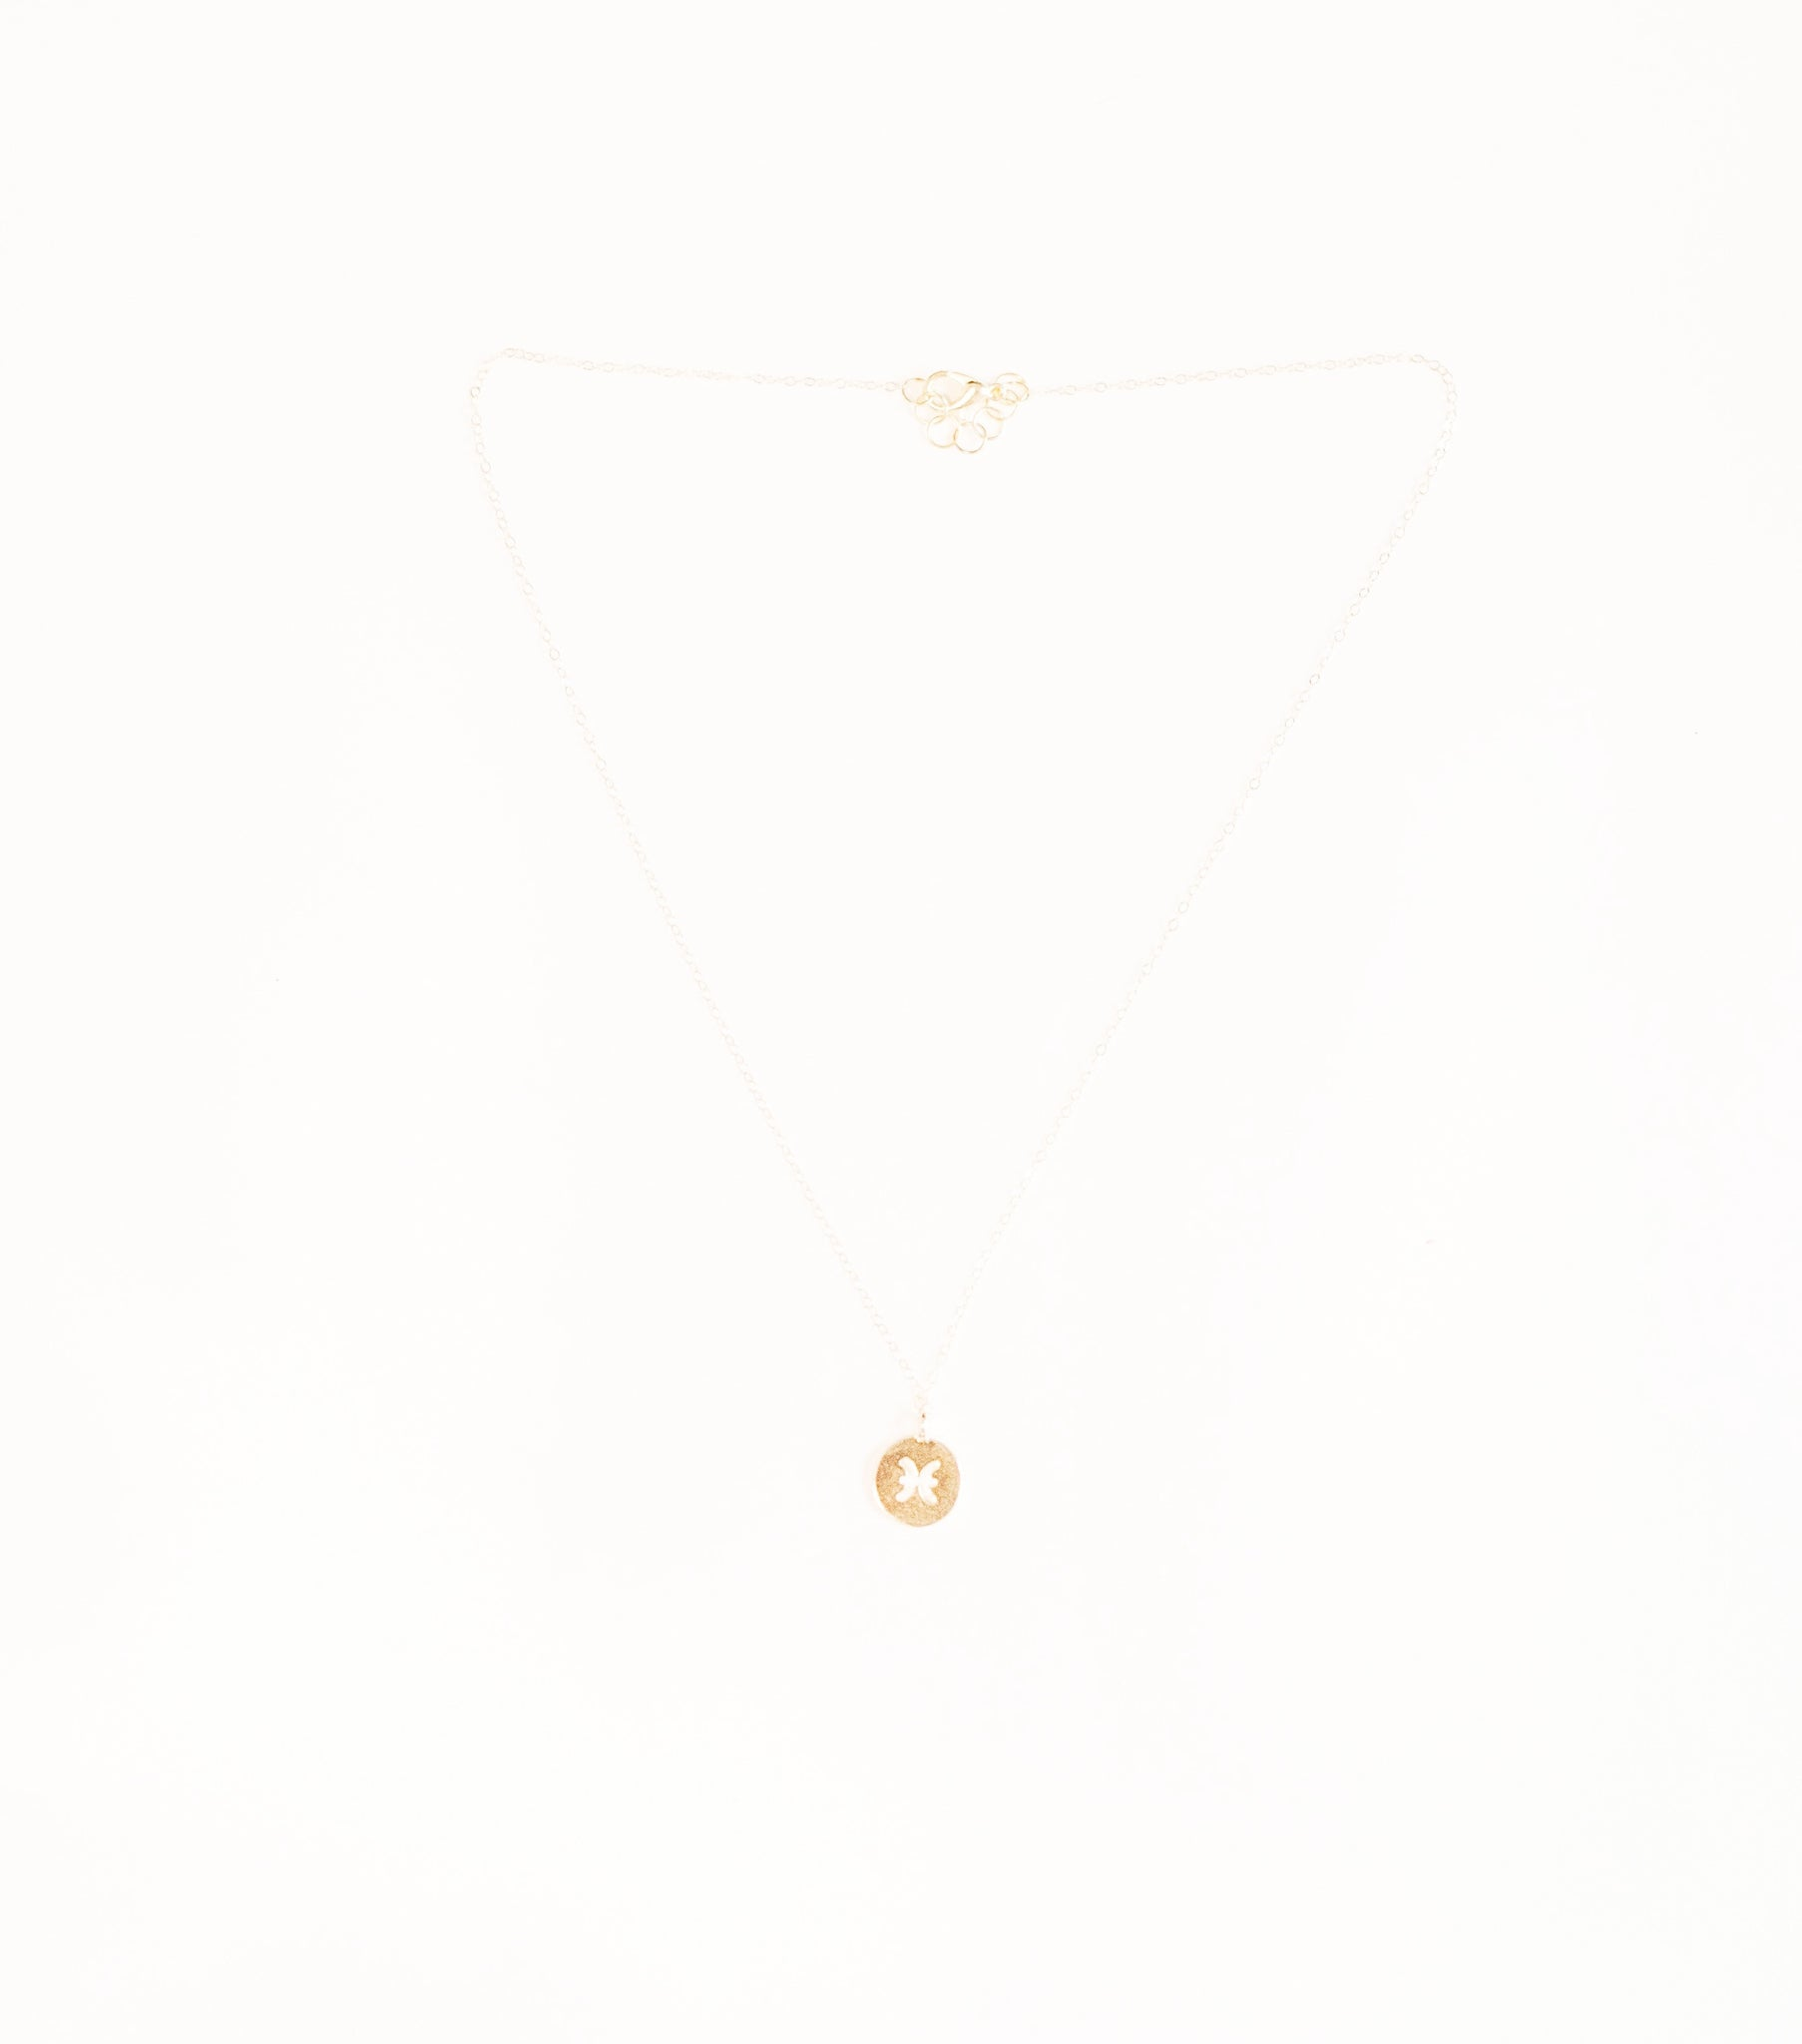 Pisces Necklace | Zodiac Necklace | 14k gold filled pisces necklace